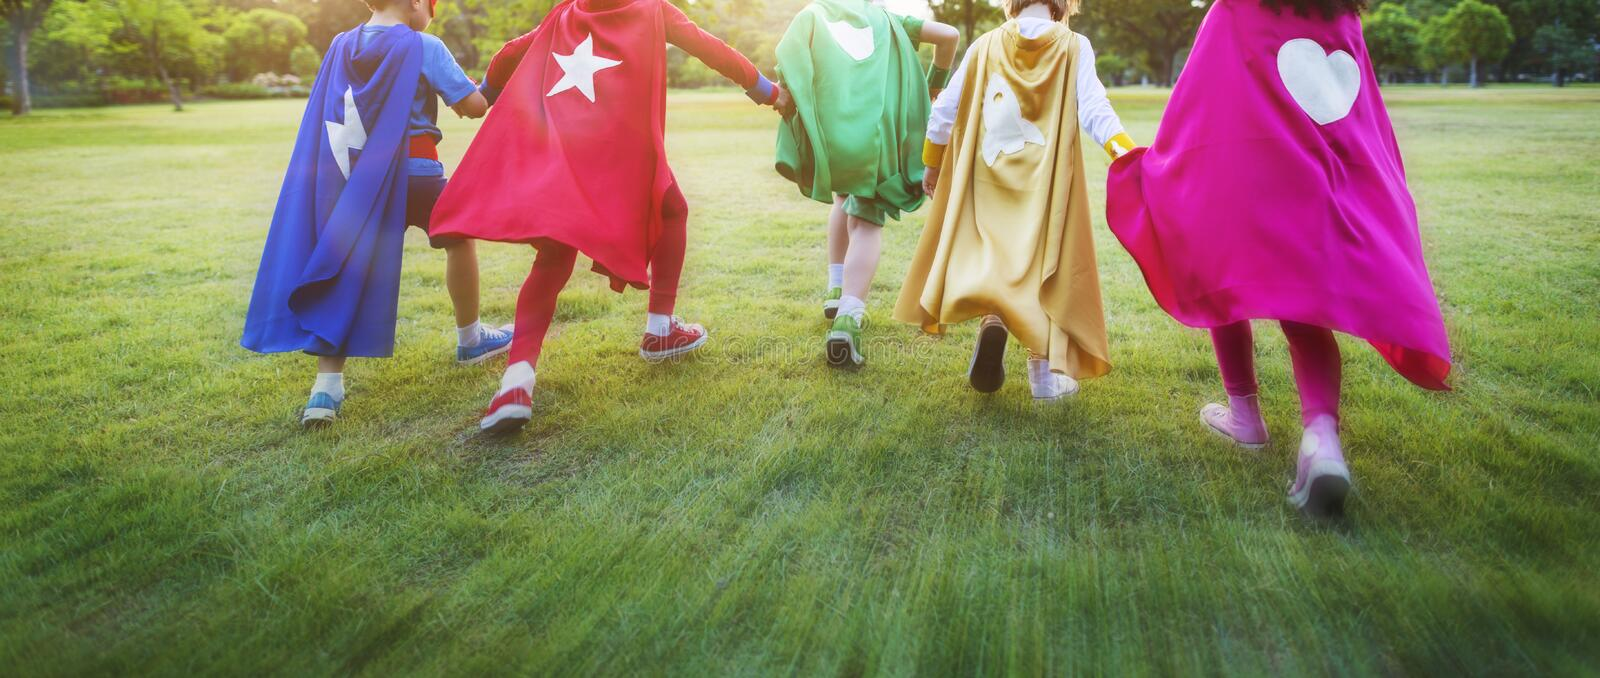 Superheroes Cheerful Kids Expressing Positivity Concept royalty free stock photography